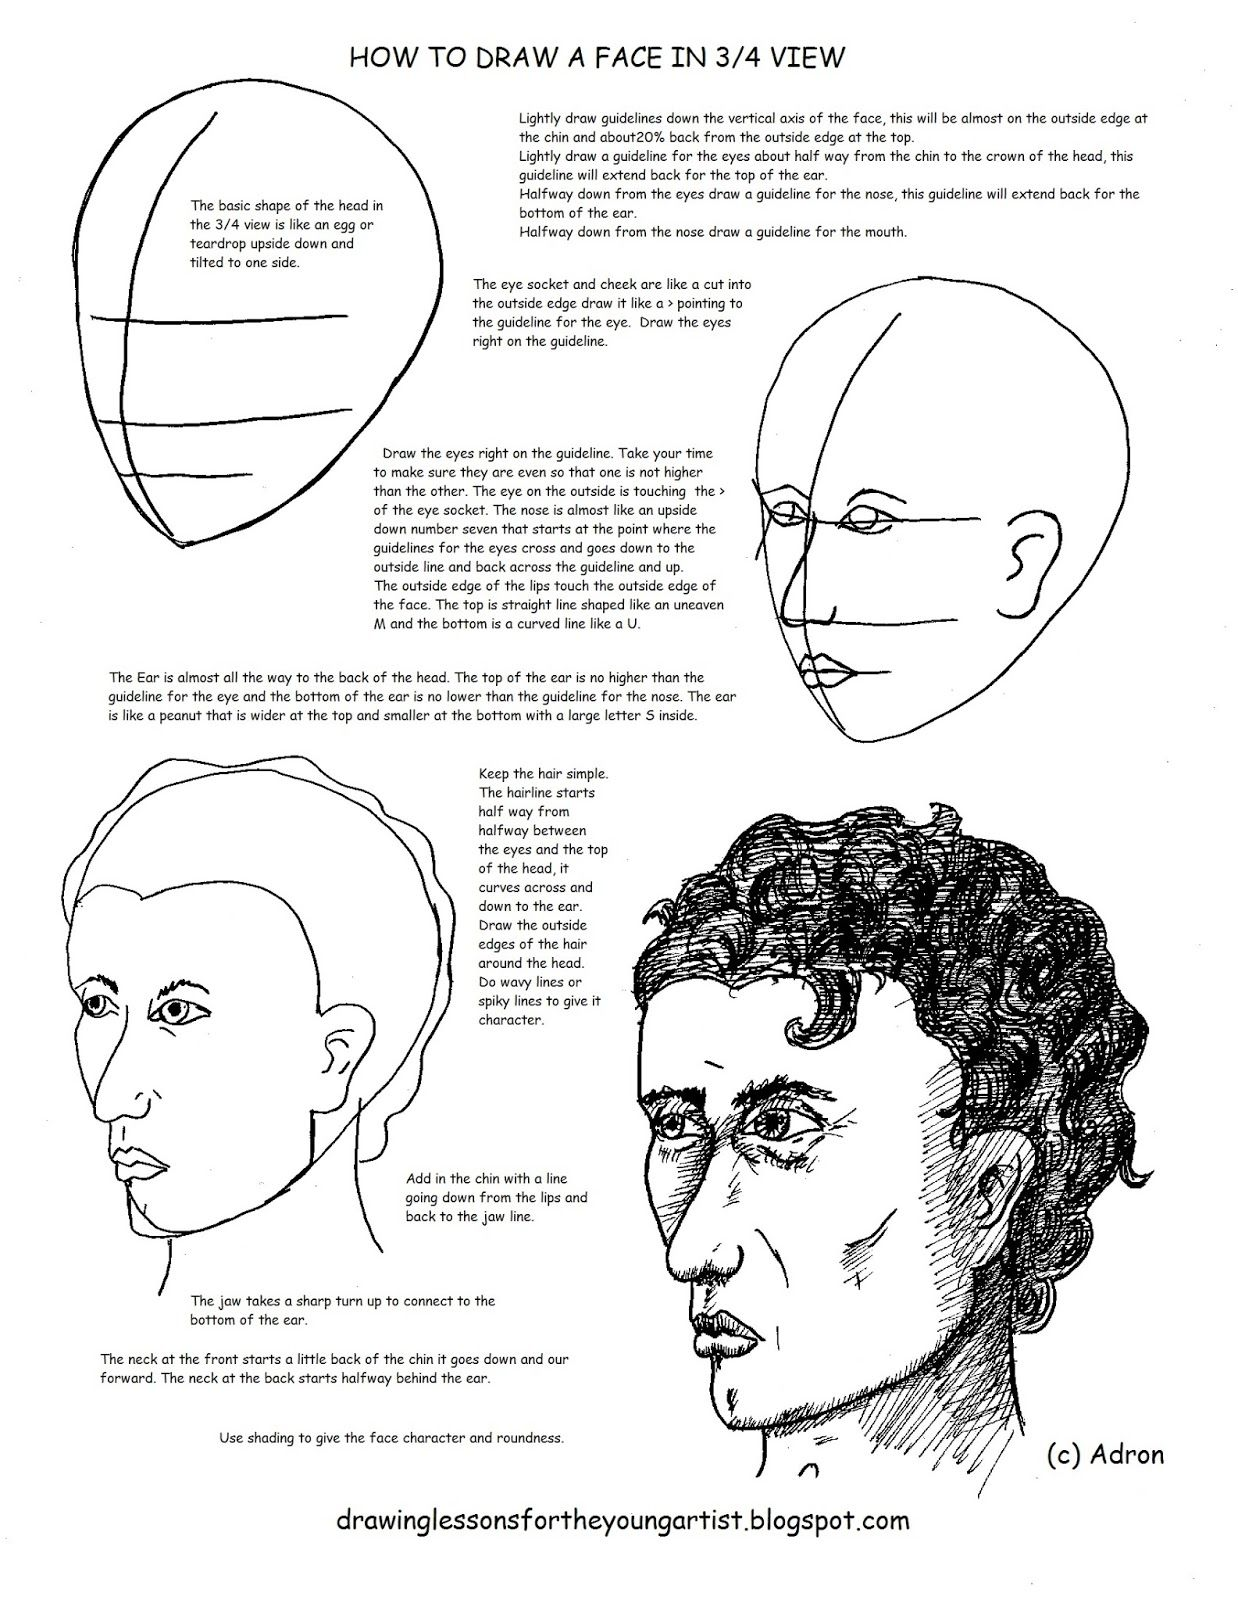 How To Draw A Man S Face In 3 4 View Worksheet